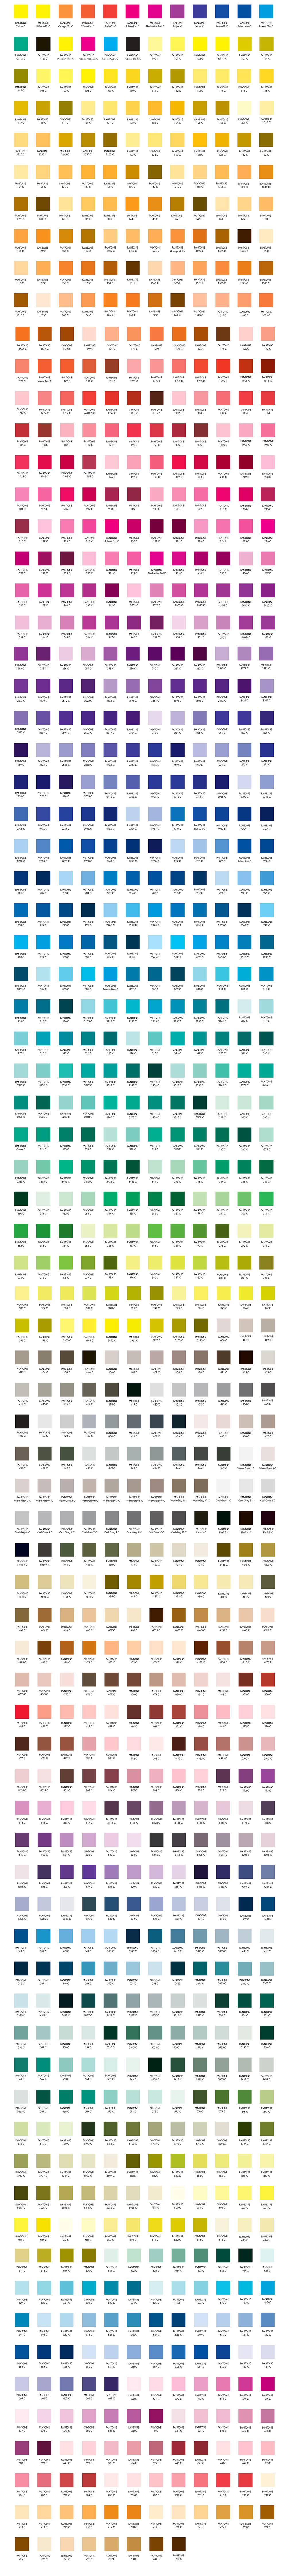 pantone farbpalette small - 8bar FHAIN v2 - Design Your Frame - Limited Edition